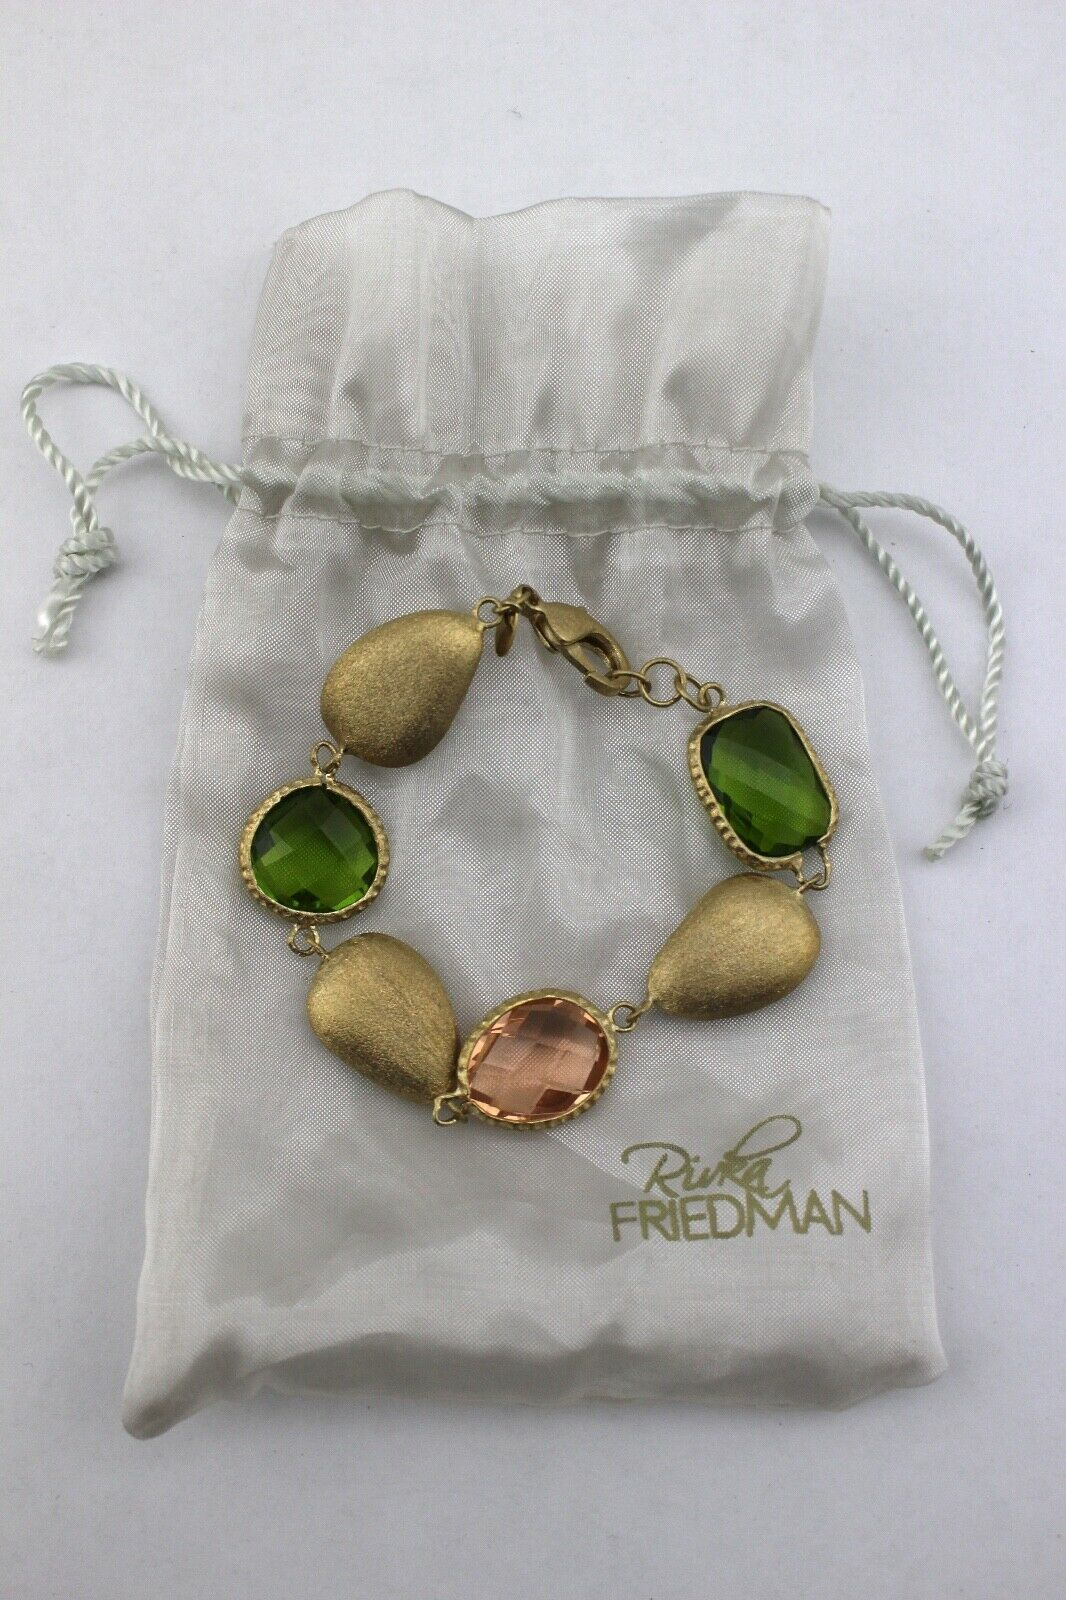 RIVKA FRIEDMAN 18K gold Clad Tone Faceted Green Peridot Pink Bracelet New Signed